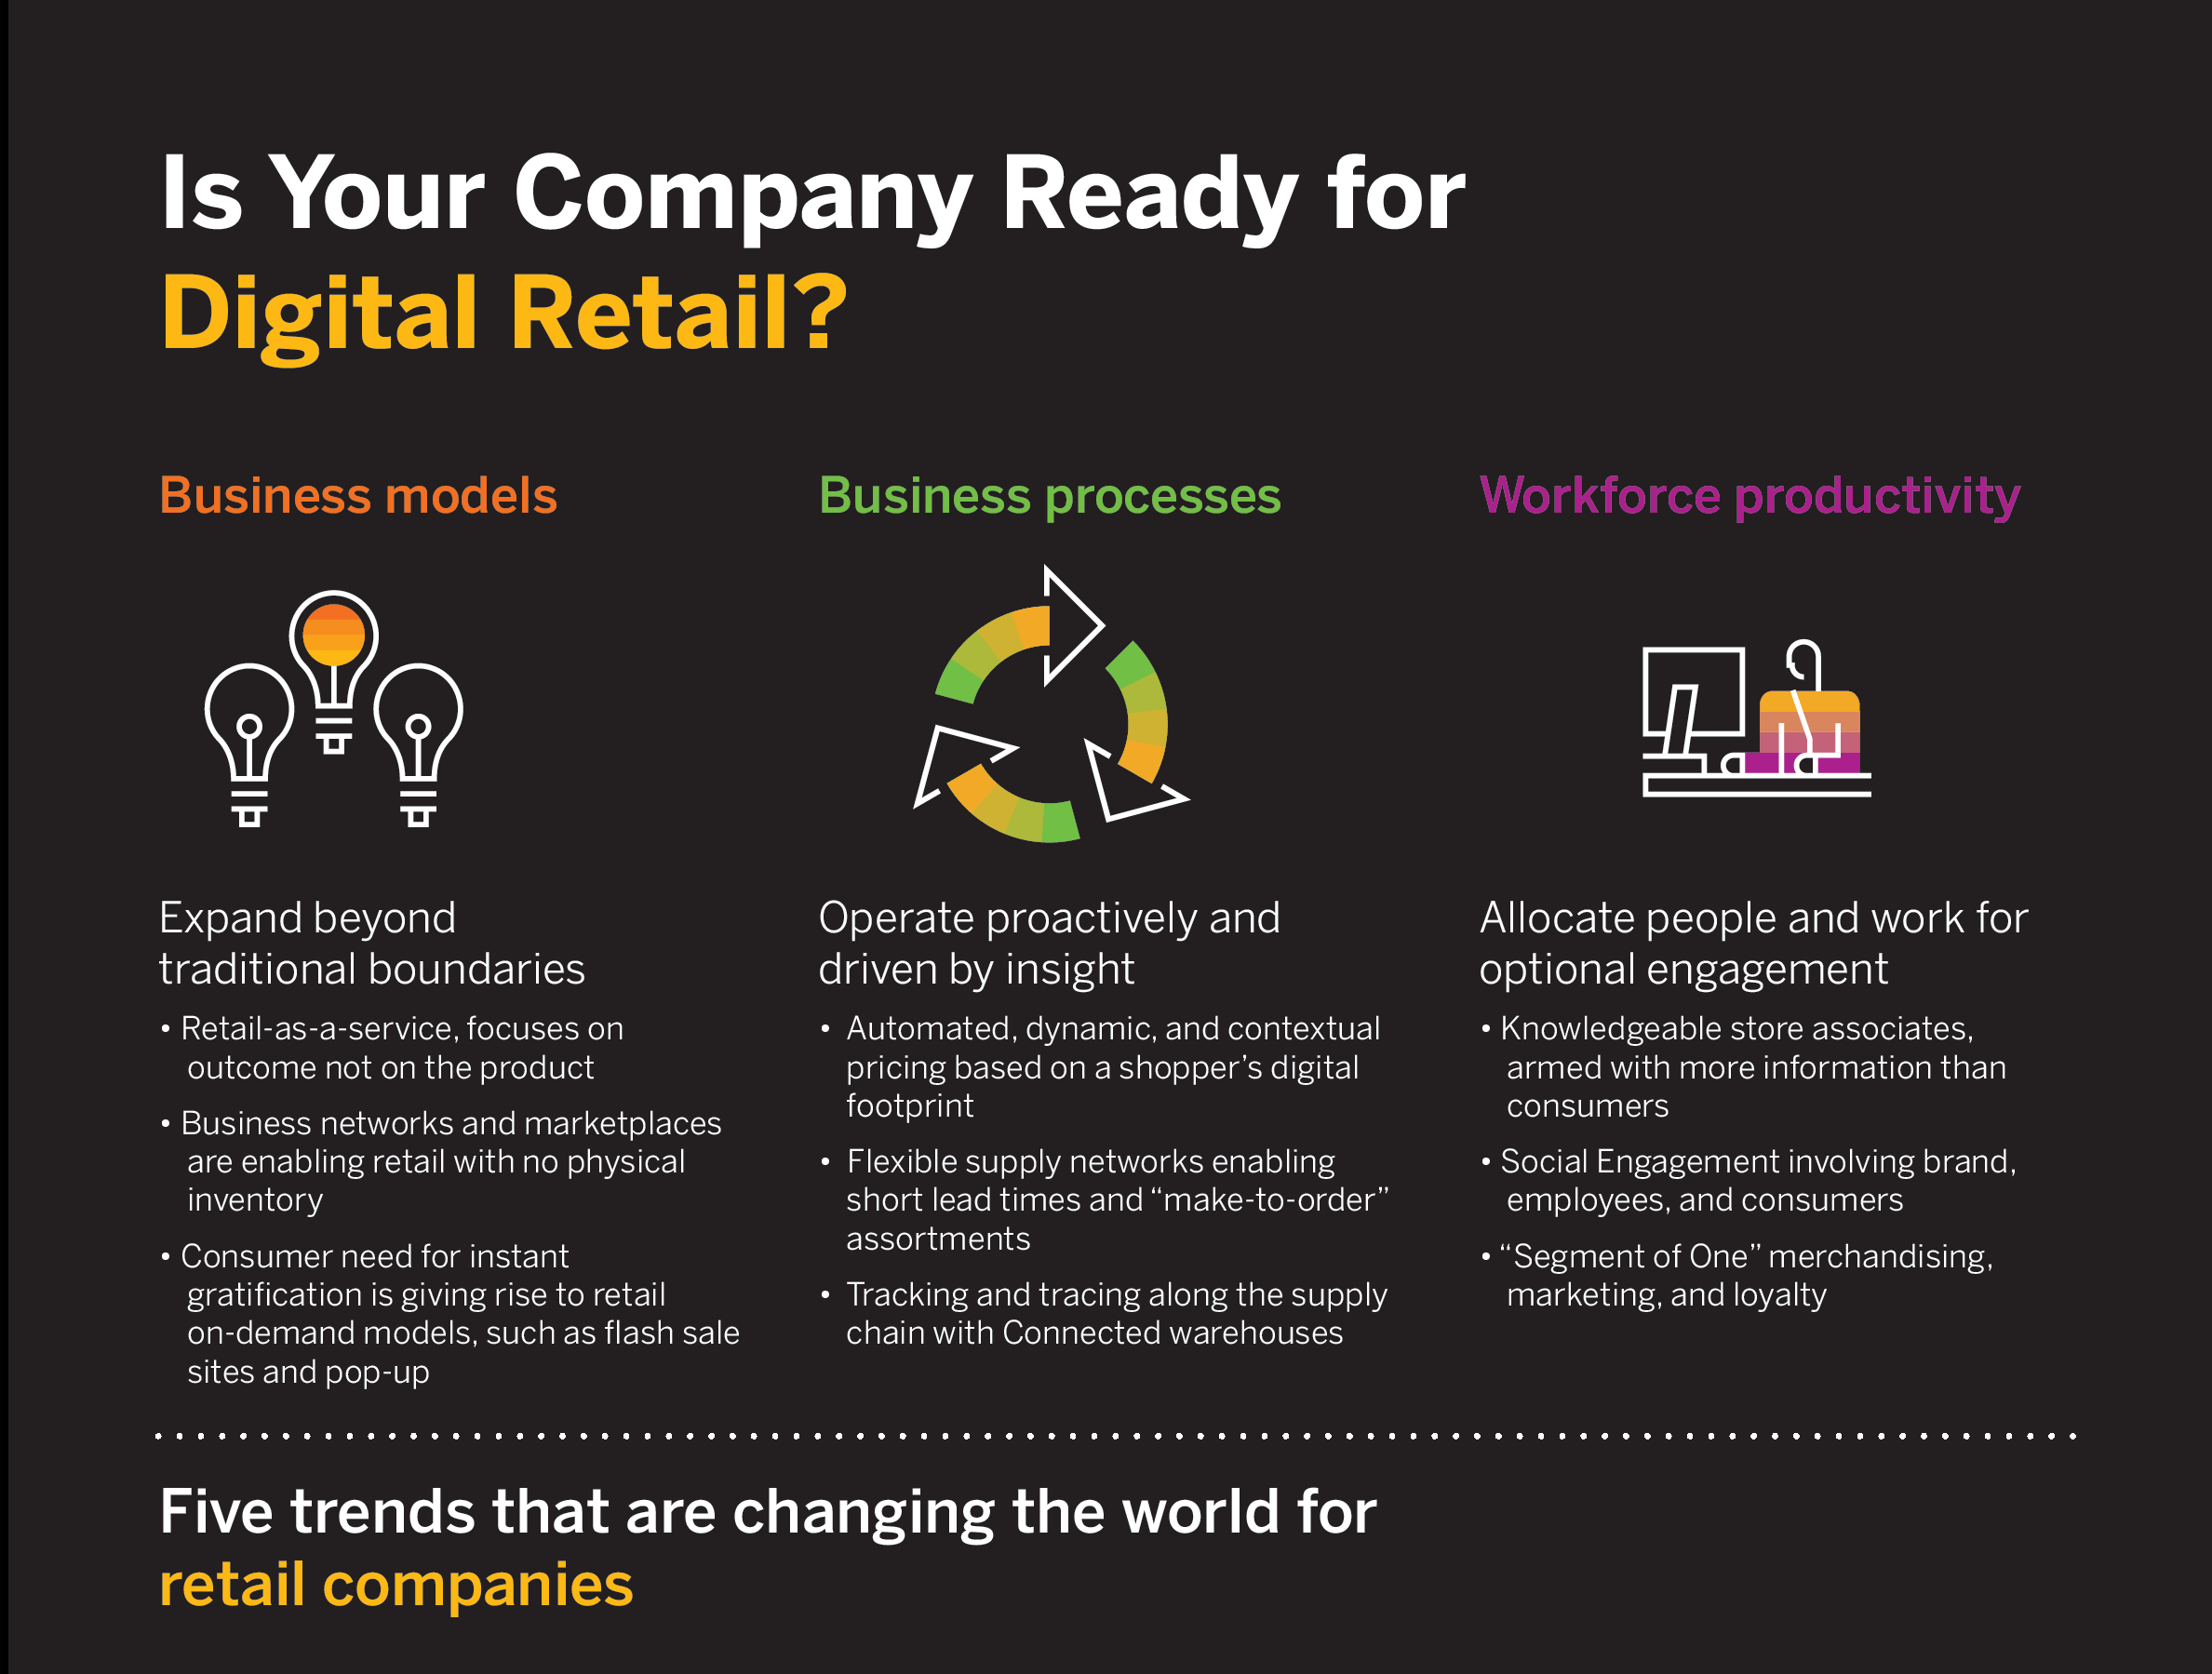 SAP B1-TOFU-Infographic-Are-You-Ready-For-Digital-Retail